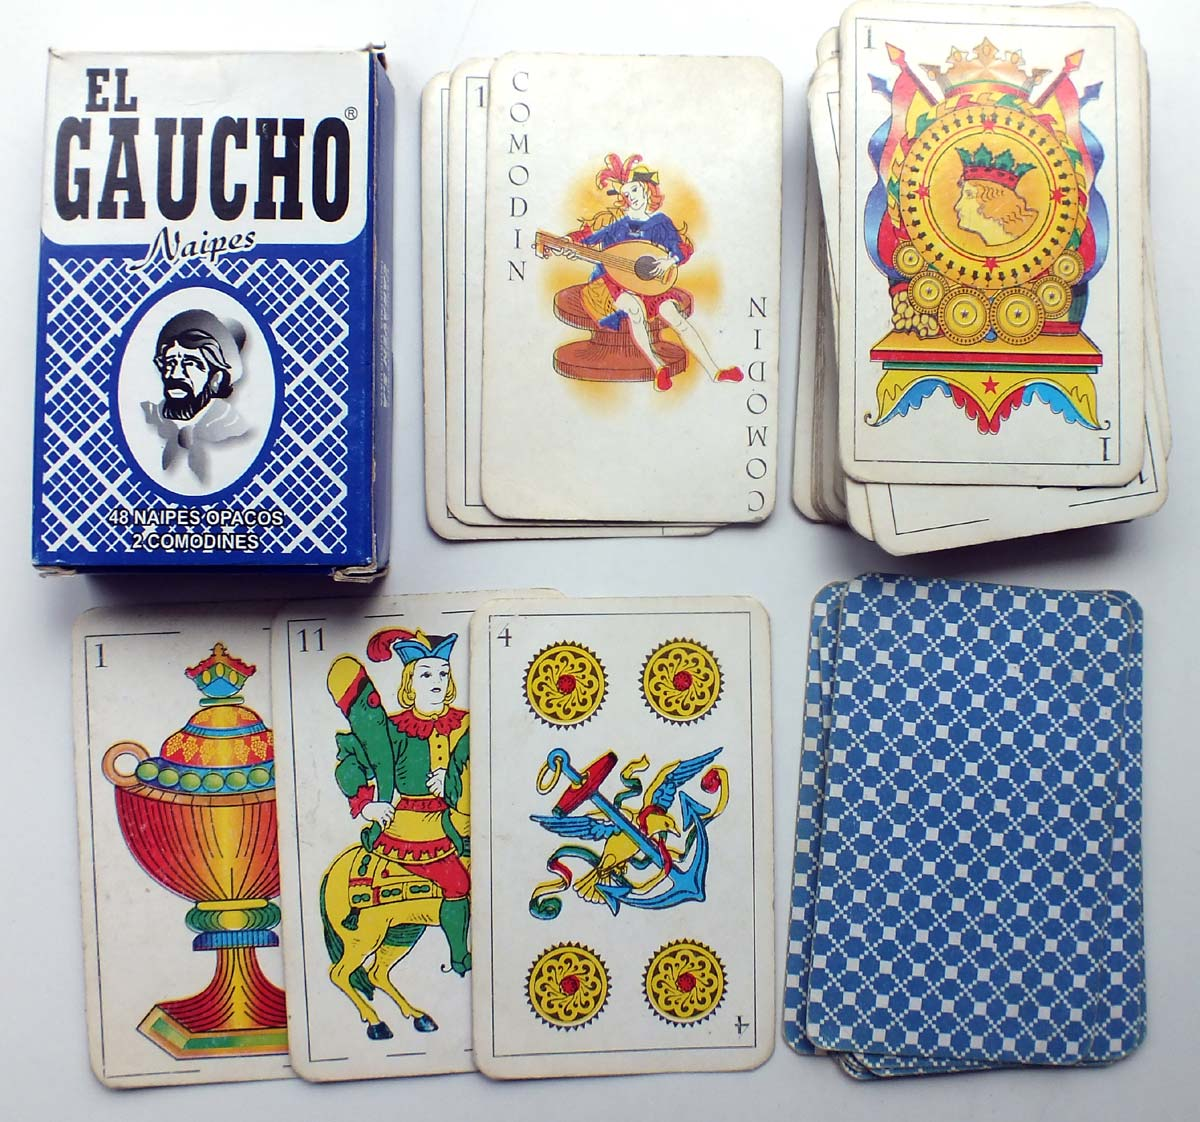 Naipes 'El Gaucho' manufactured and distributed by Caraven S.A., c.2000